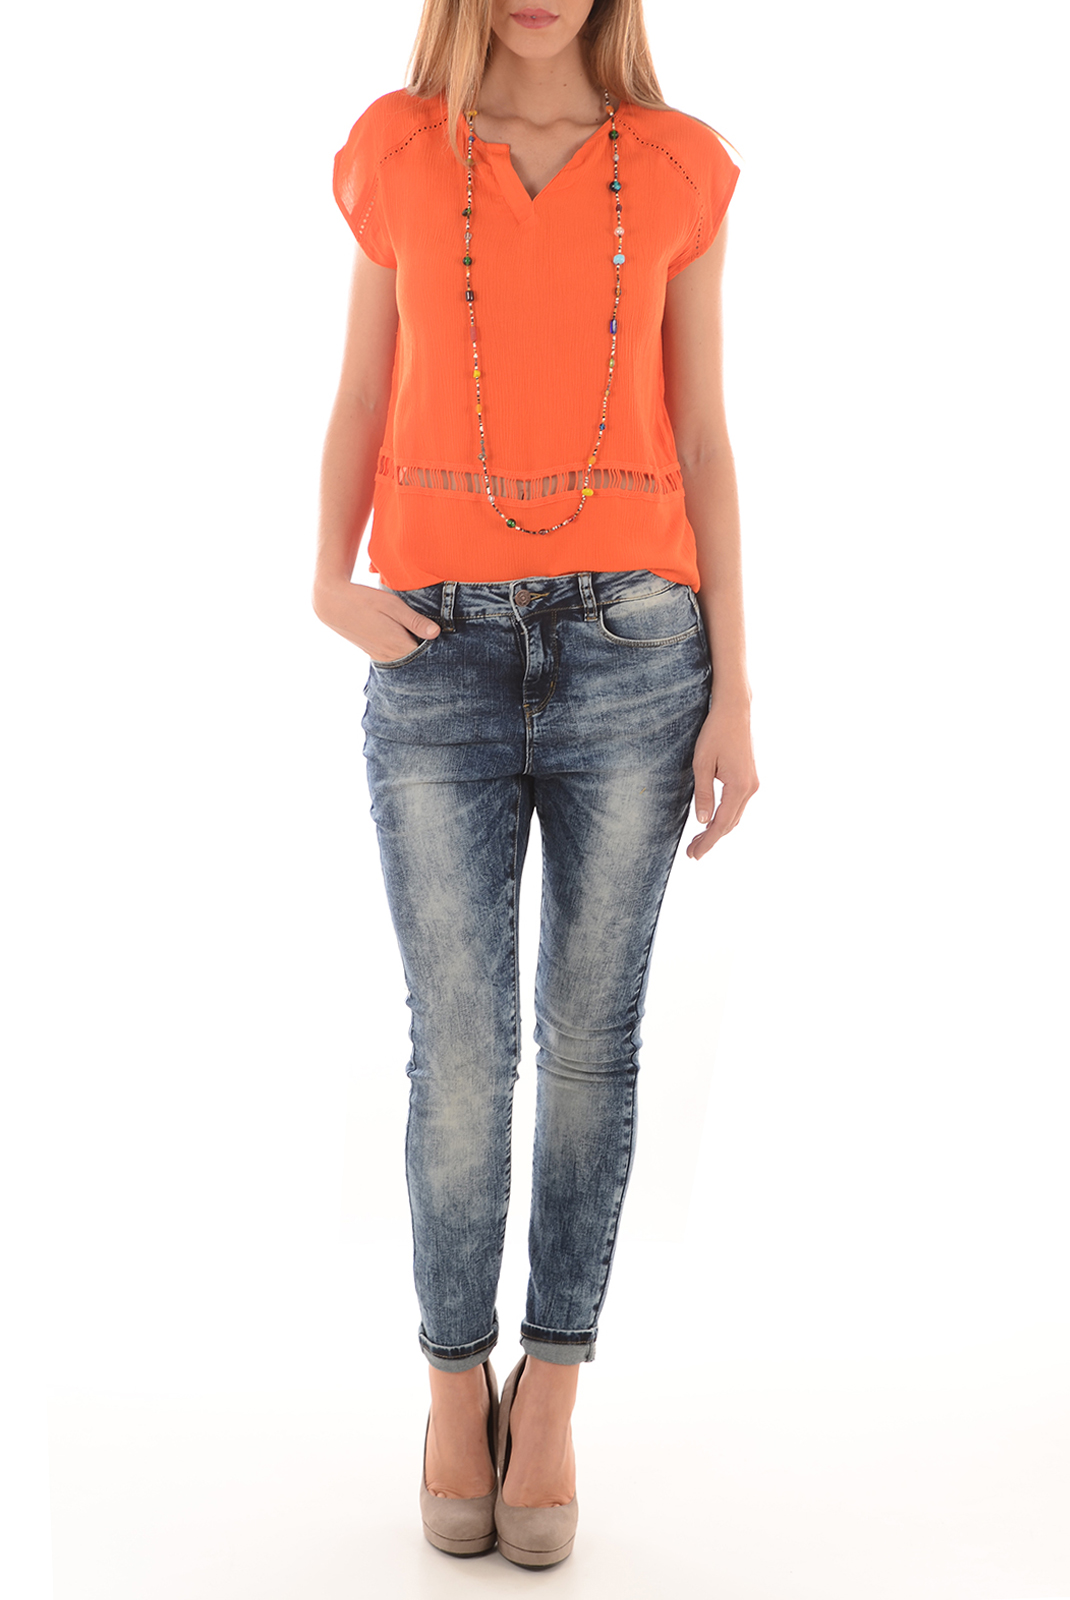 Tops & Tee shirts  Vero moda CRINKLA  SS TOP A MANDARIN RED